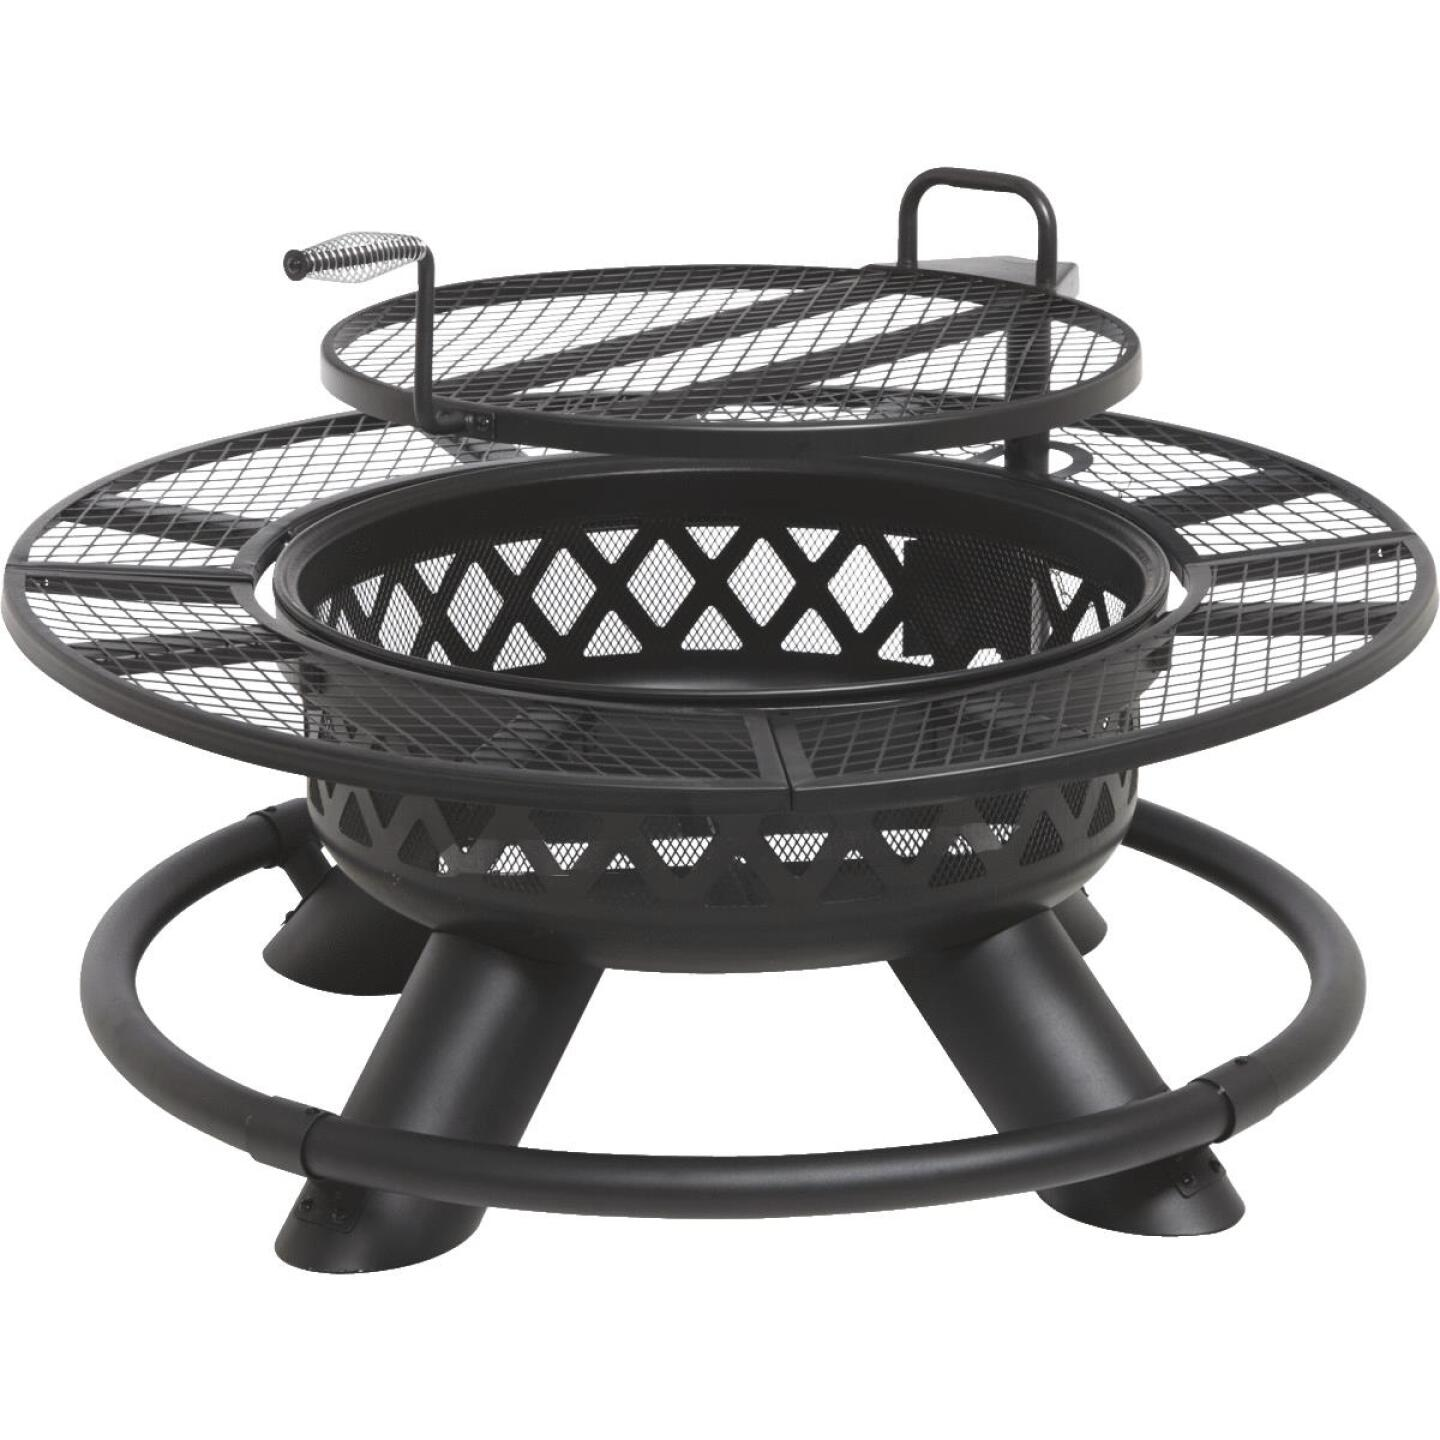 Big Horn 47 In. Camp Black Round Steel Fire Pit Image 1